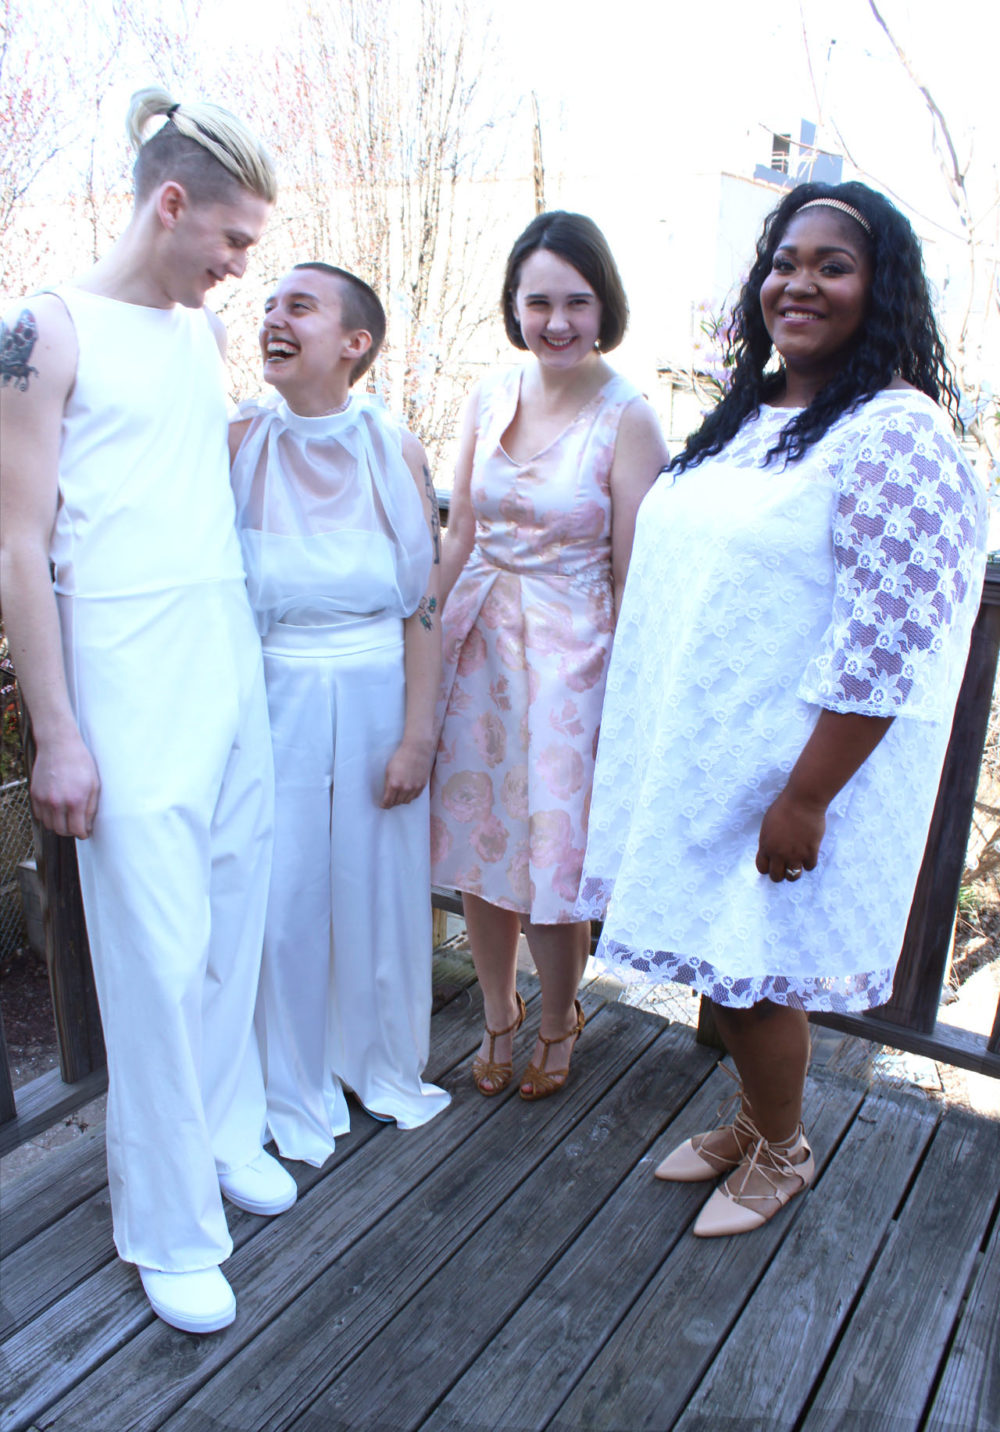 Inclusive fashion brand Smart Glamour is expanding their wedding and special occasion collection